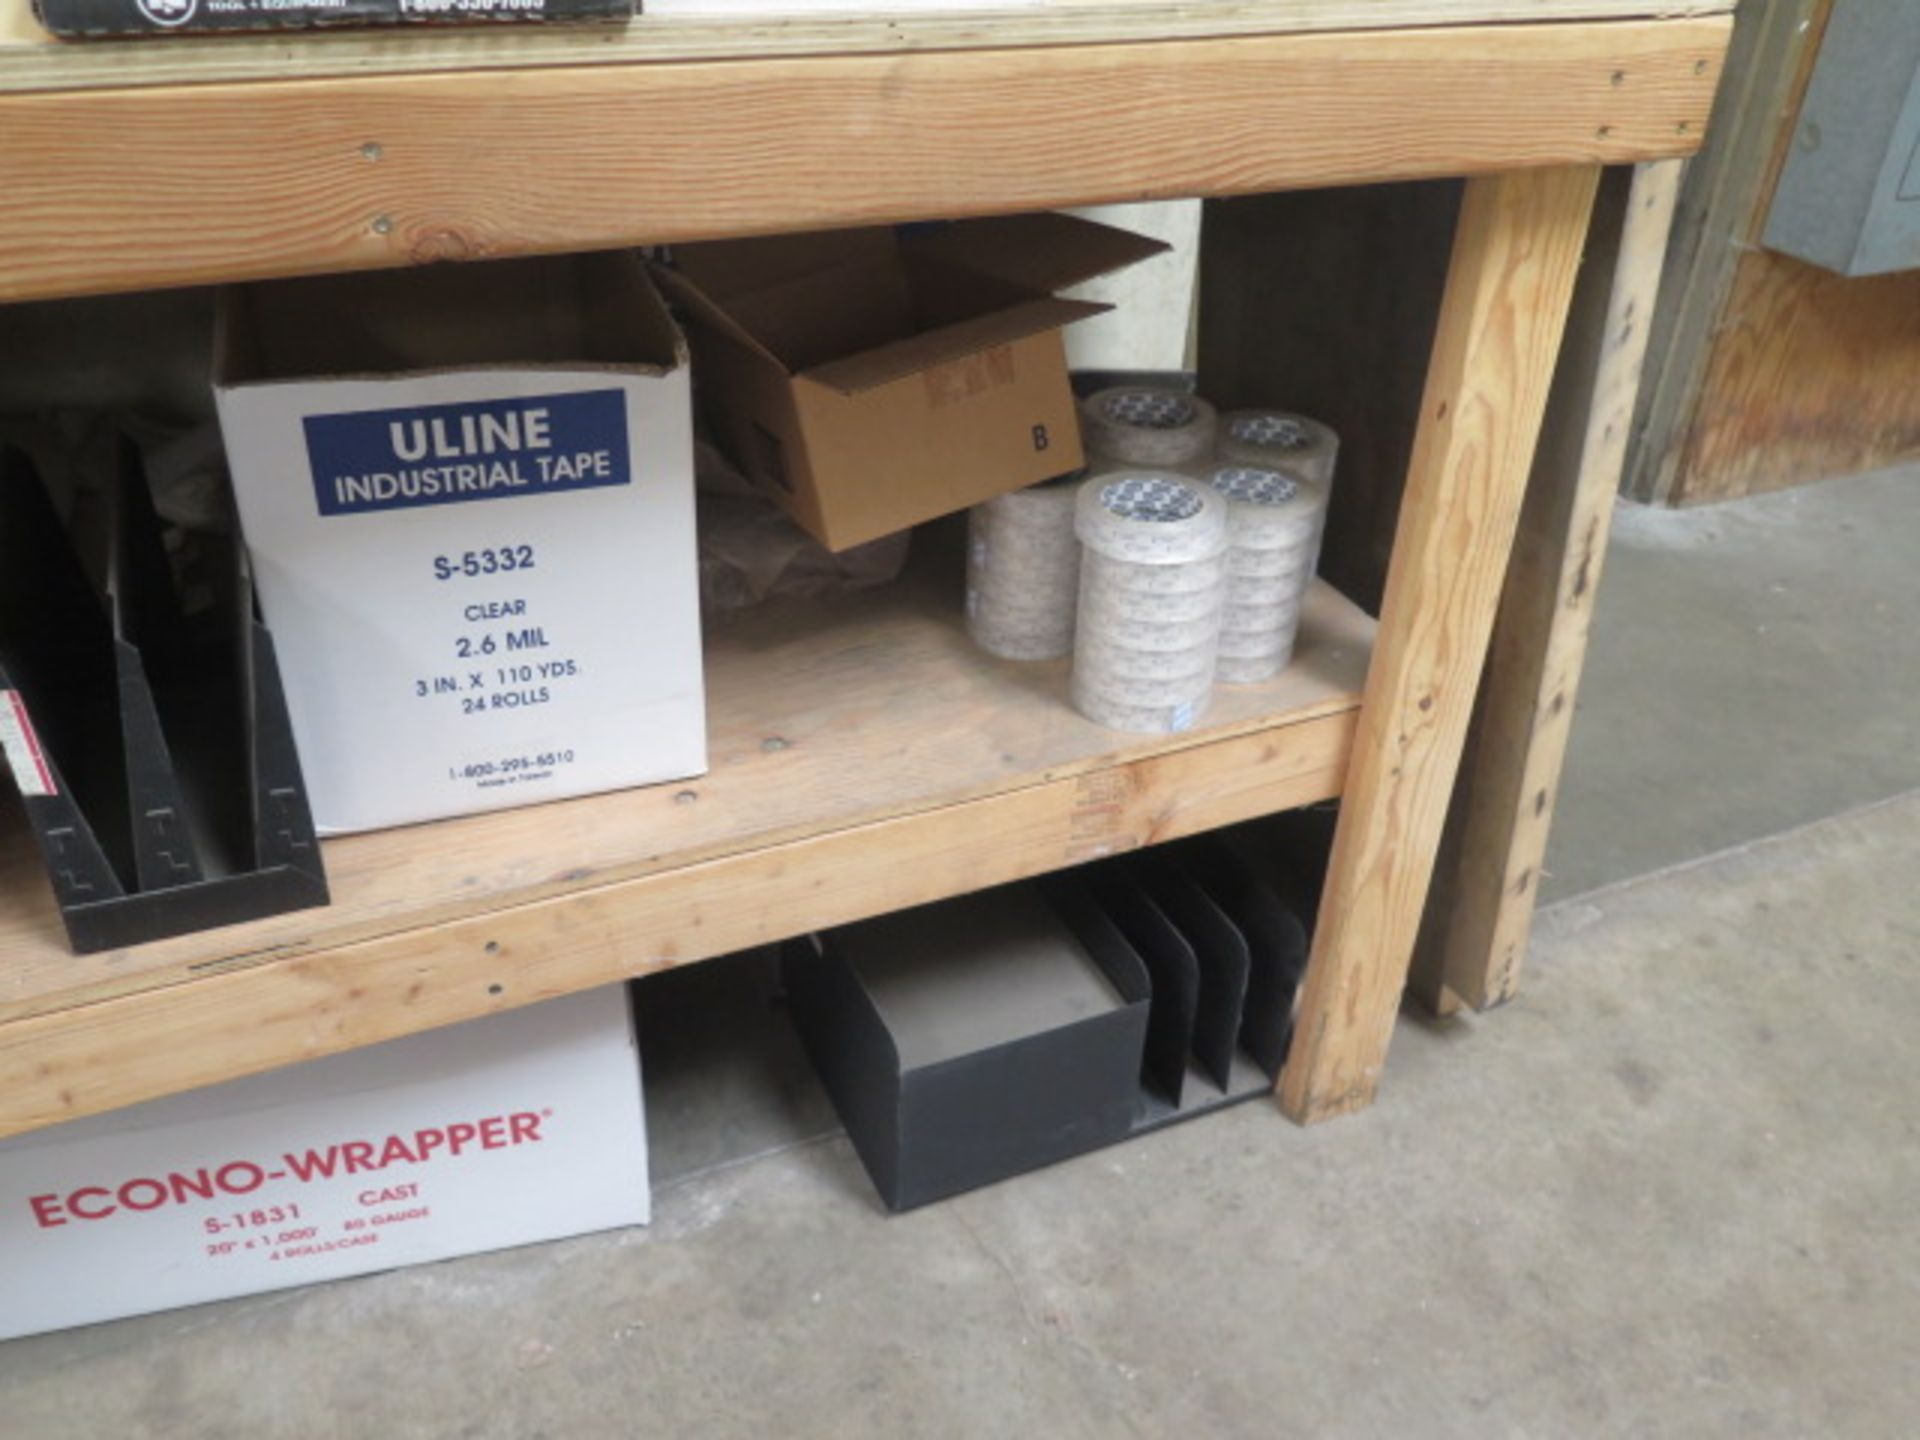 Shipping Supplies and Table (SOLD AS-IS - NO WARRANTY) - Image 3 of 5